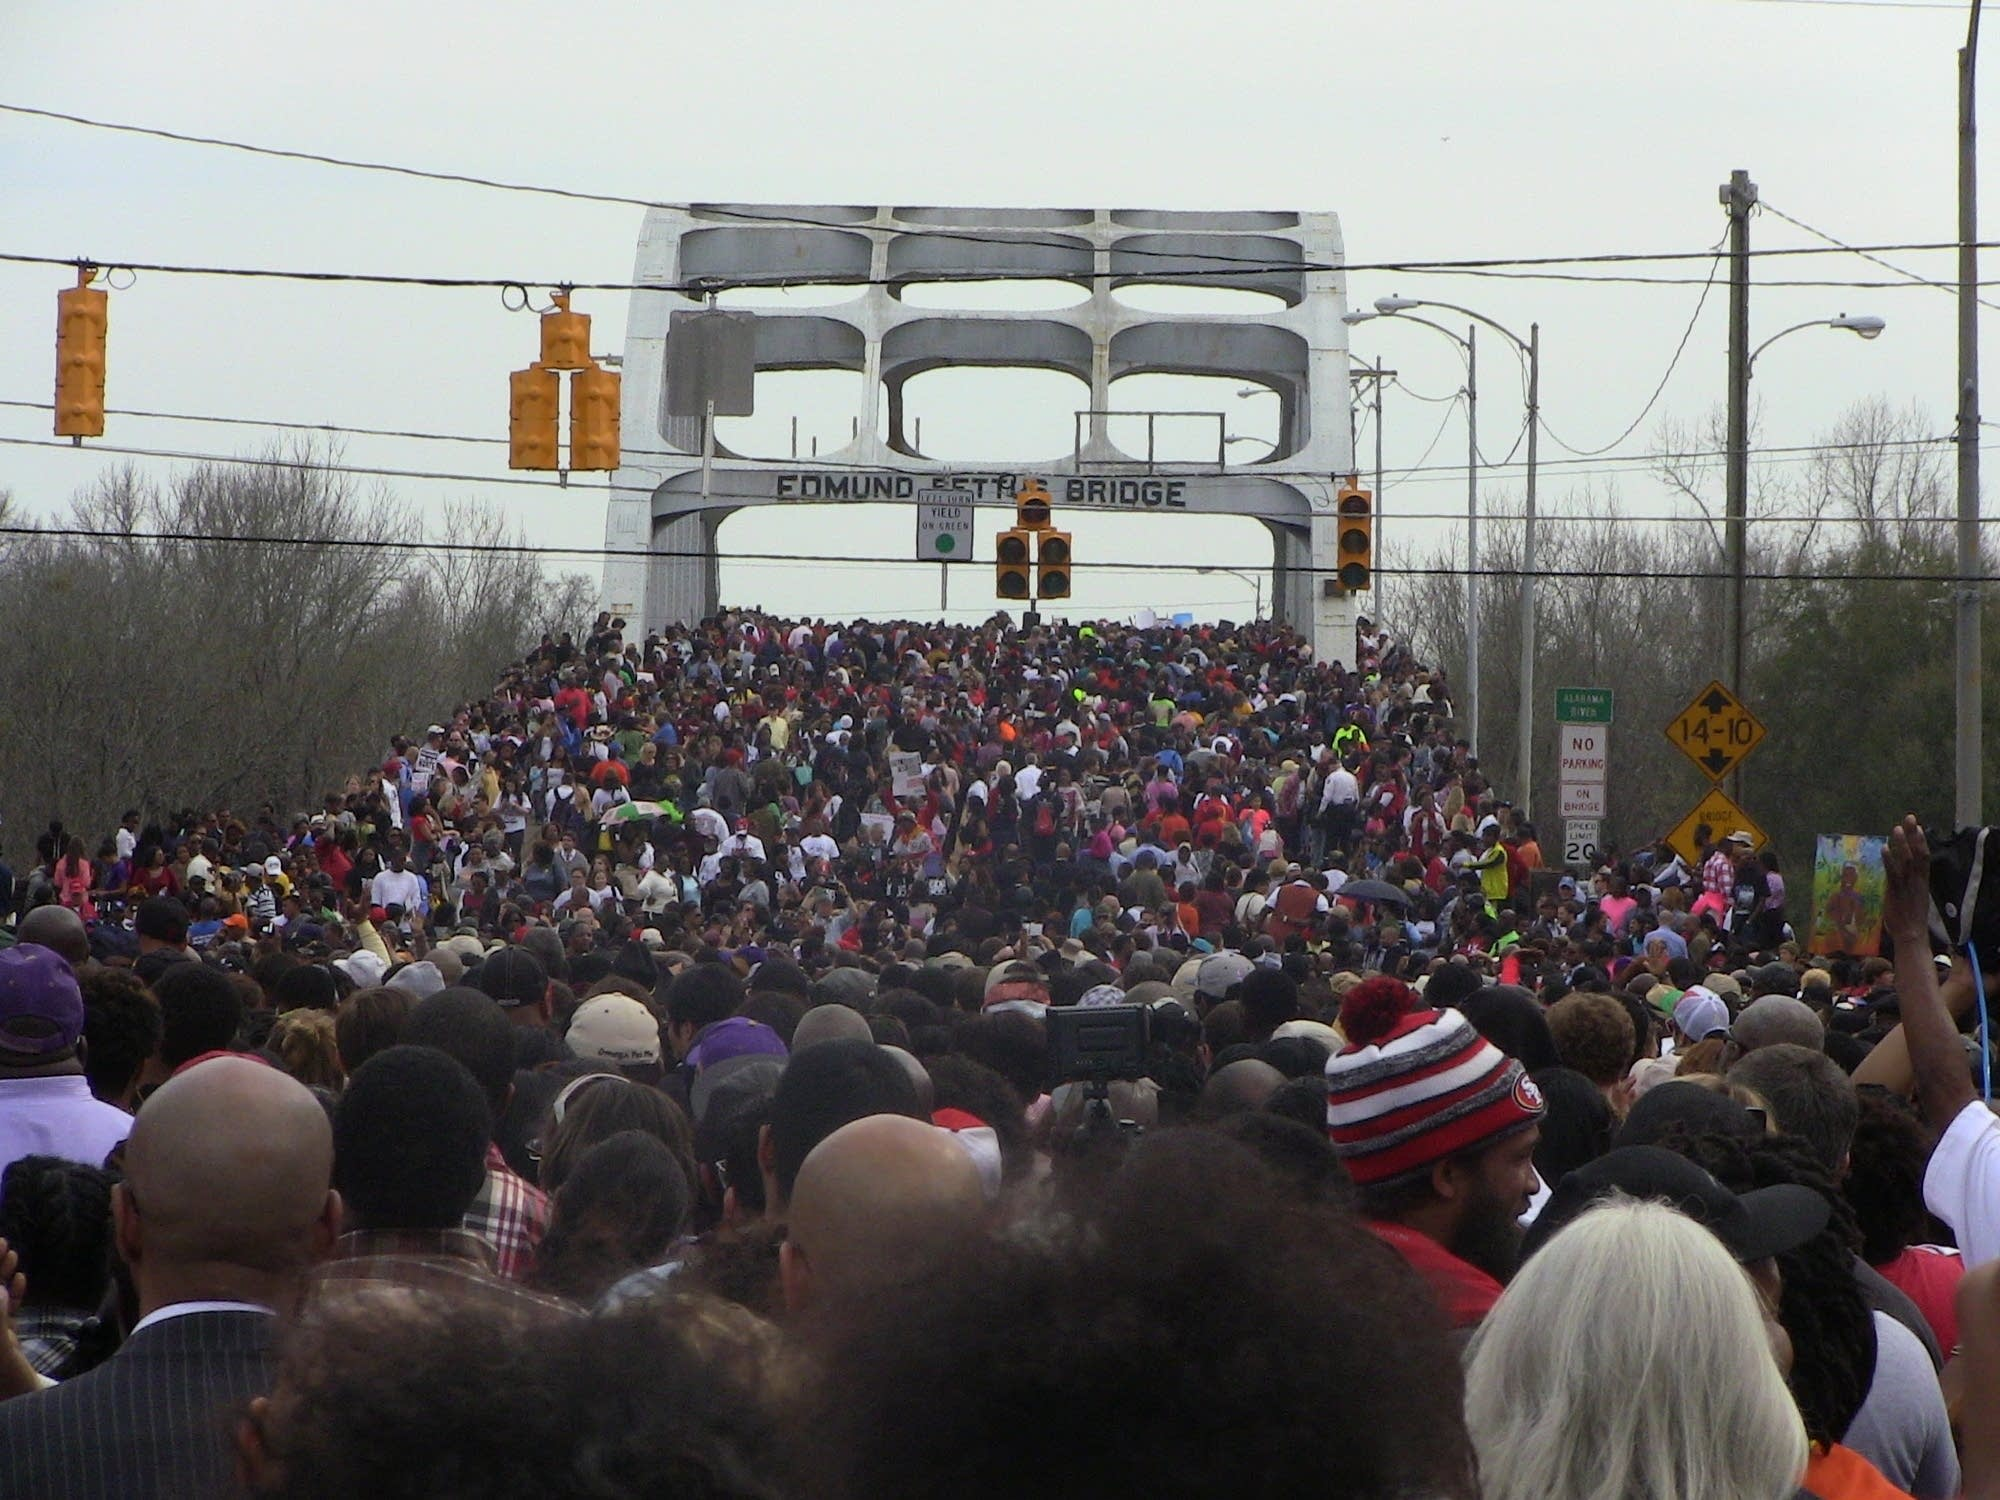 Marching across the Edmund Pettus Bridge in Selma